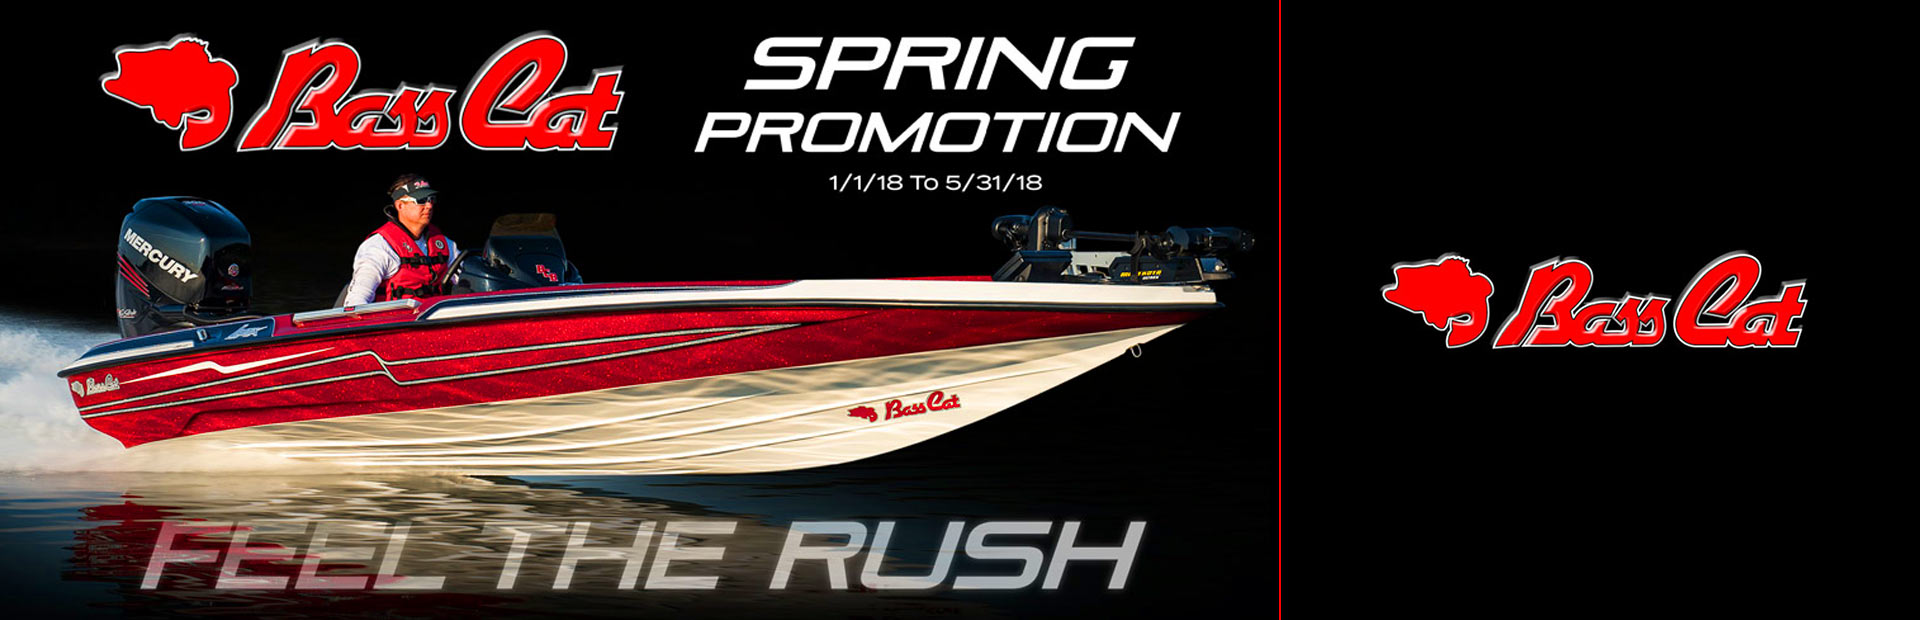 Bass Cat Boats: Spring Promotion